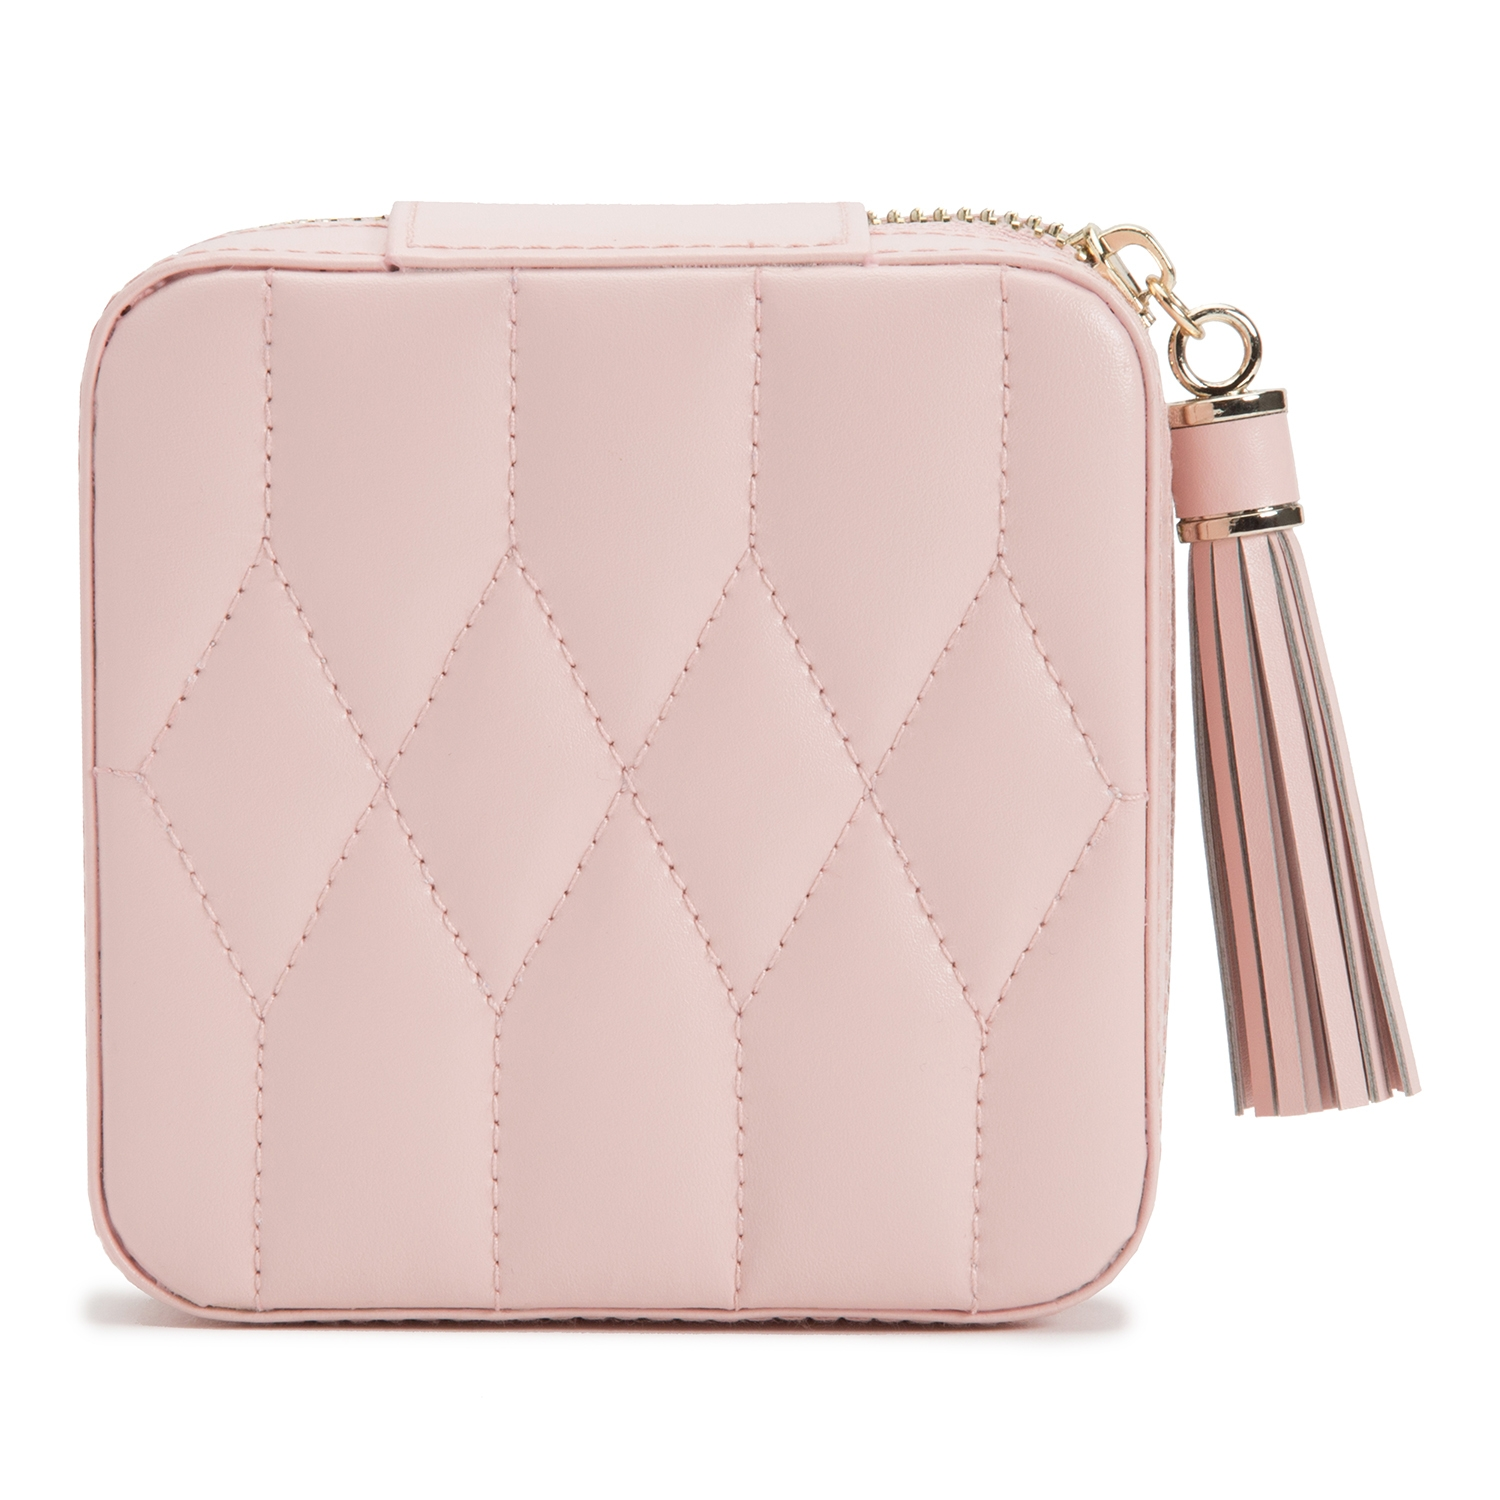 WOLF THE ALKEMISTRY PINK QUILTED LEATHER JEWELLERY TRAVEL CASE